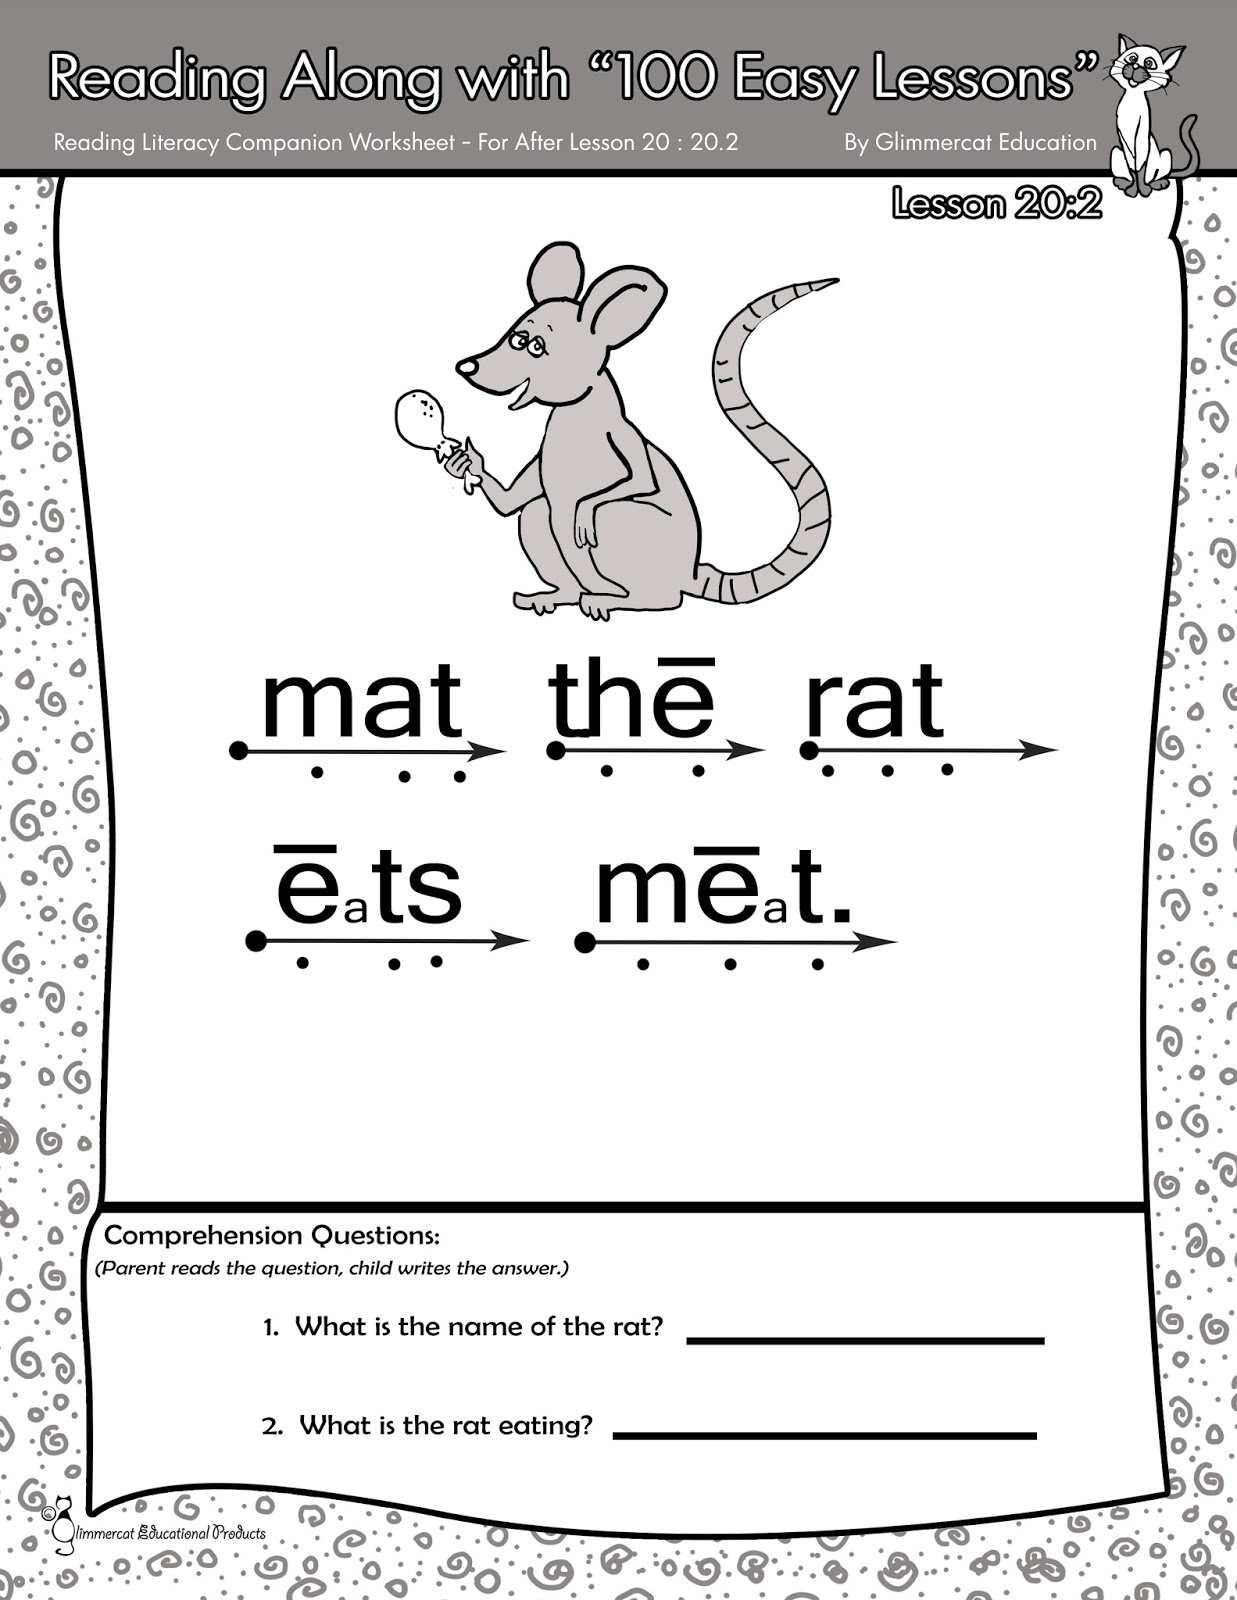 worksheet Teach Your Child To Read In 100 Easy Lessons Worksheets glimmercat supplemental activities for teach your child to read in if youre not exactly sure what looking at there that is a mat the rat craft from one of my freebie reading stories